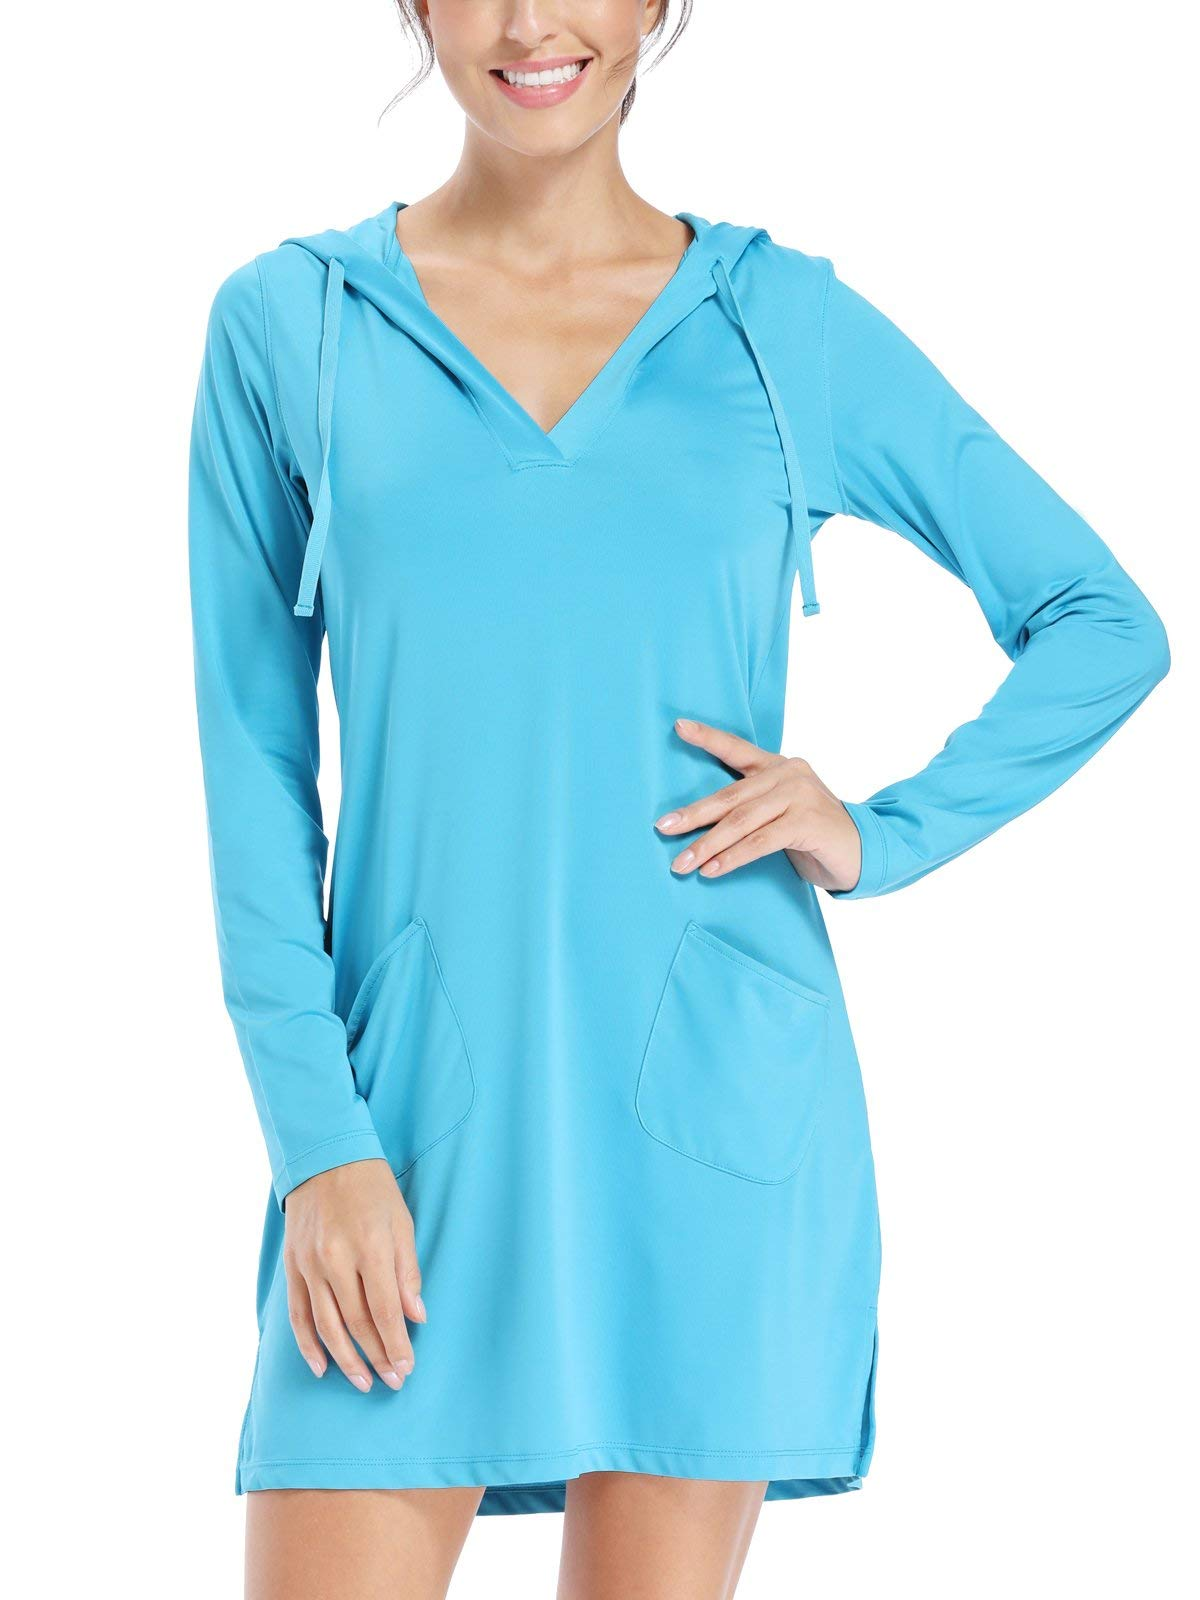 Willit Women's UPF 50+ Cover-Up Dress SPF Long